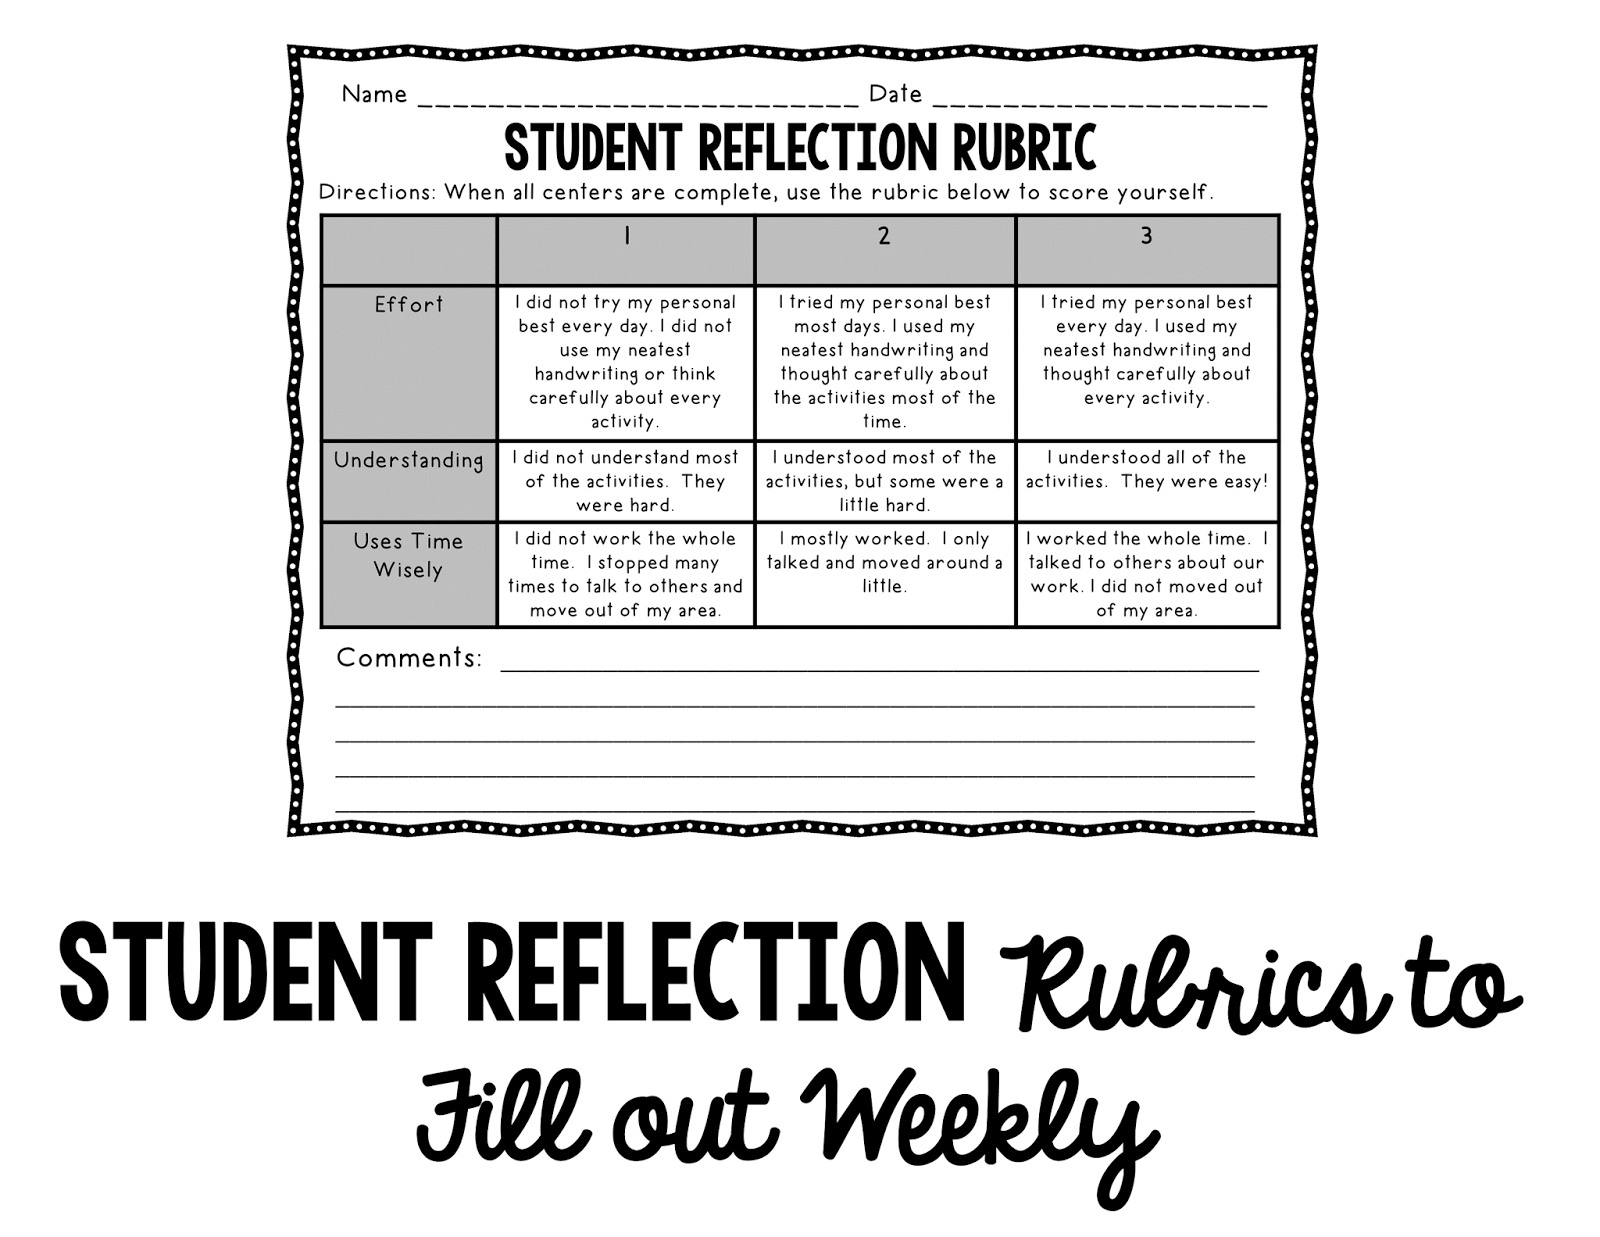 also included a weekly reflection rubric for students to complete if ...